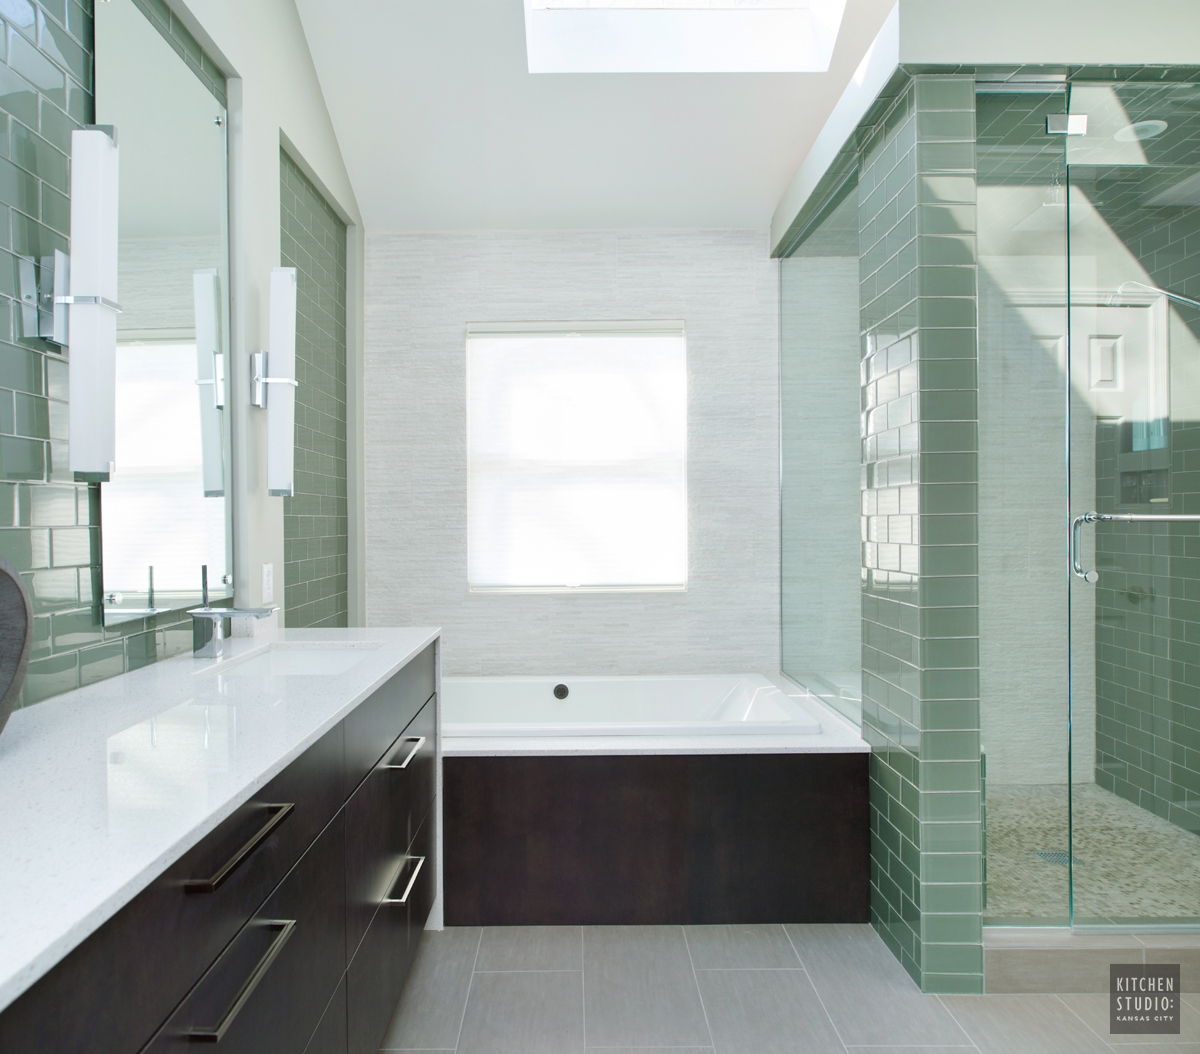 Bathroom Showrooms Kansas City kitchen studio: kc | design